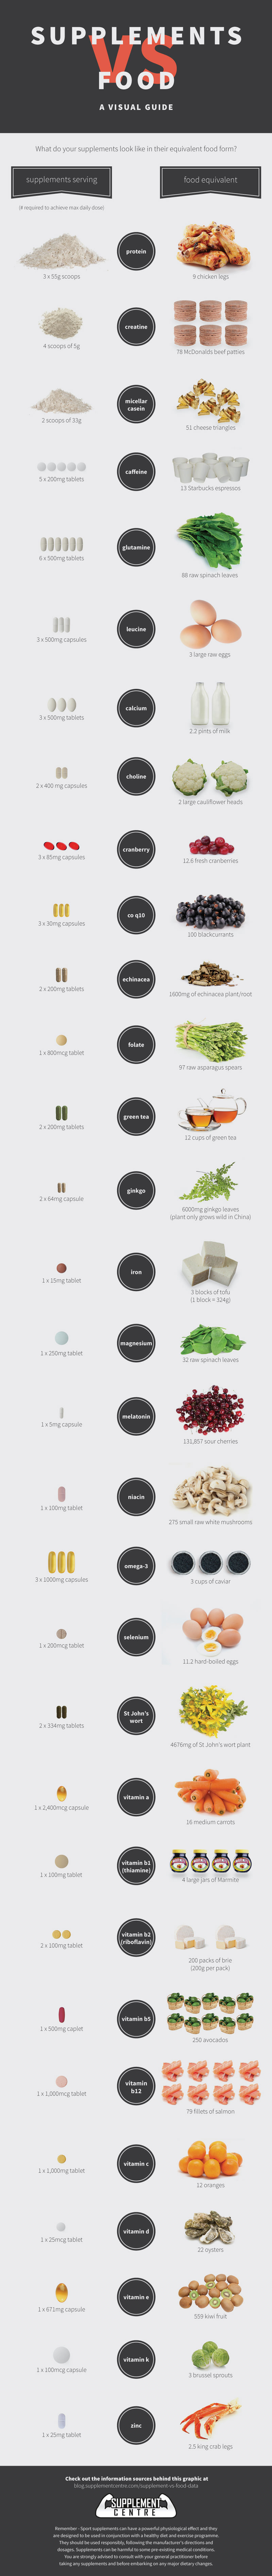 31 Supplements VS 31 Foods Infographic